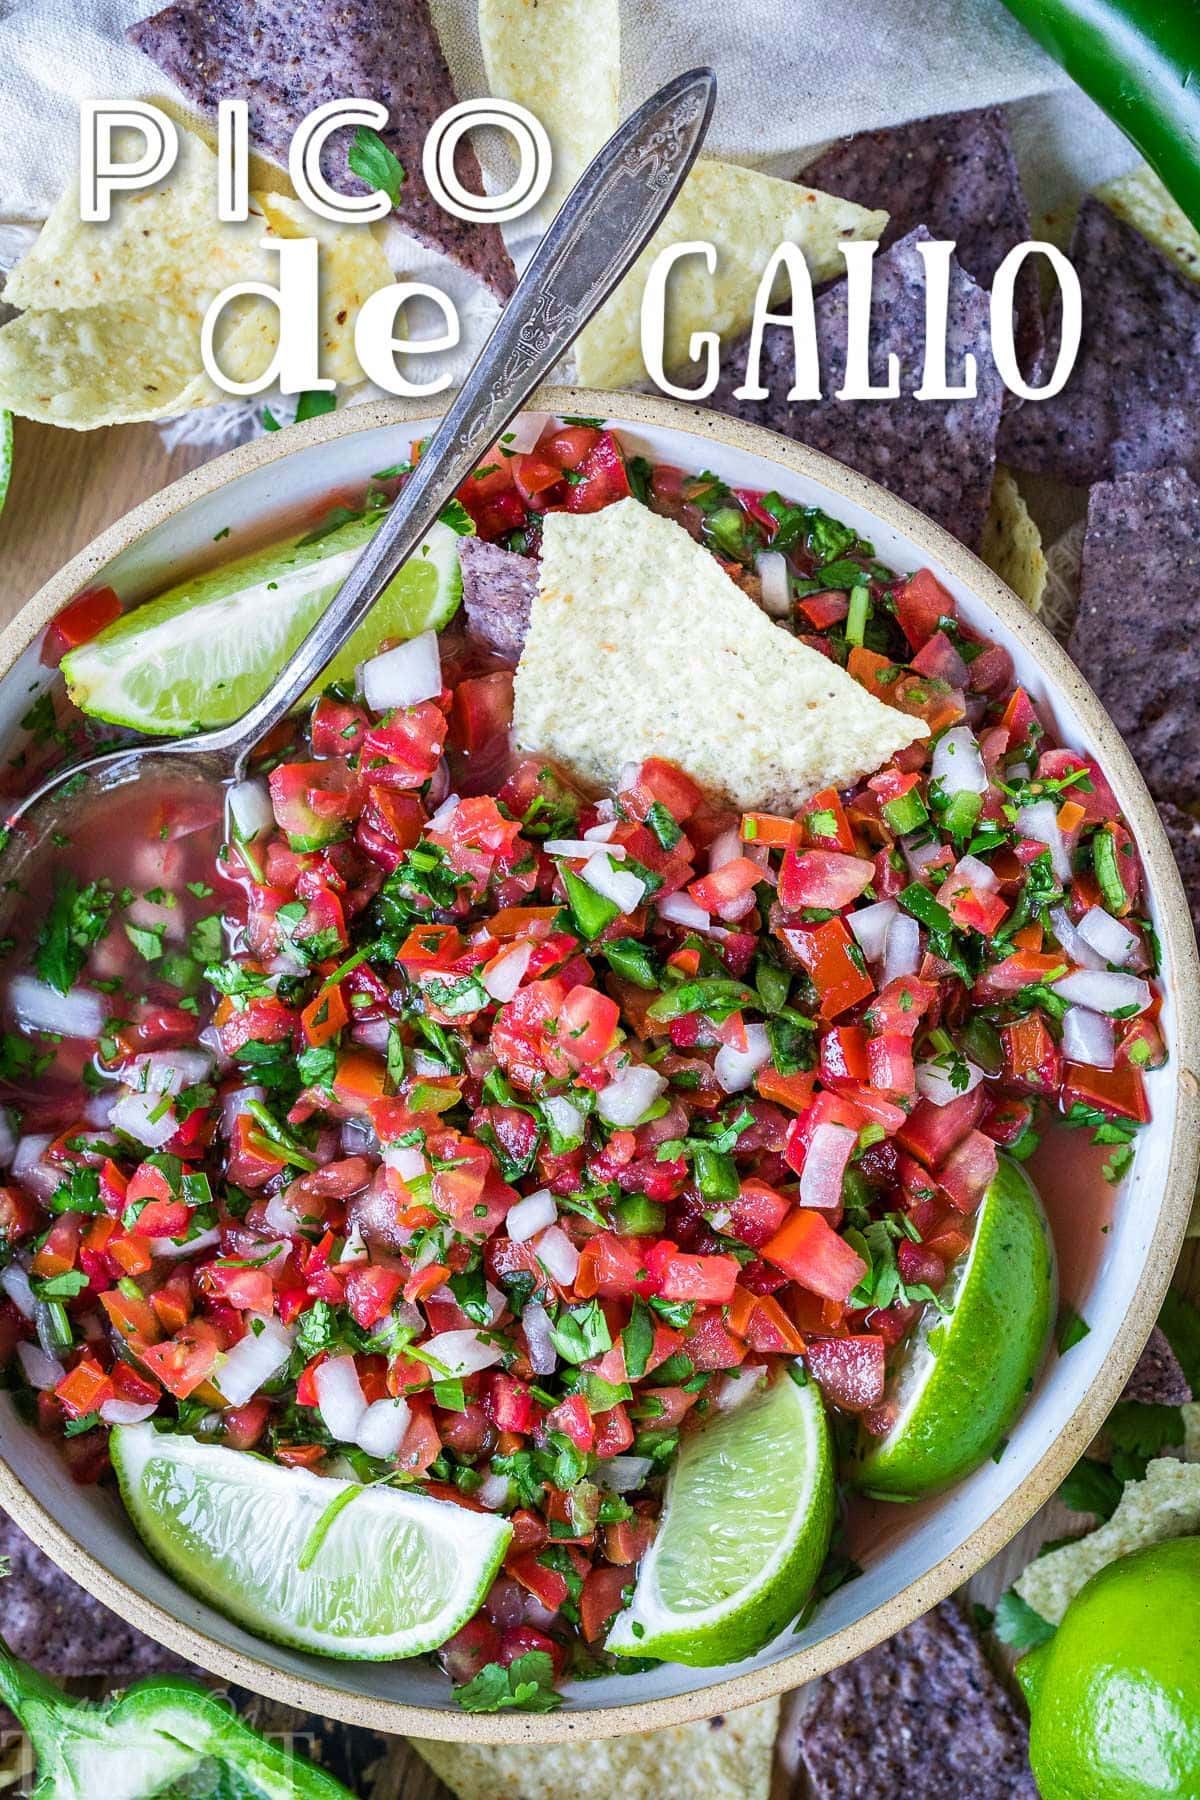 top down view of pico de gallo in clay bowl garnished with lime wedges and surrounded by chips. title overlay at top of image.